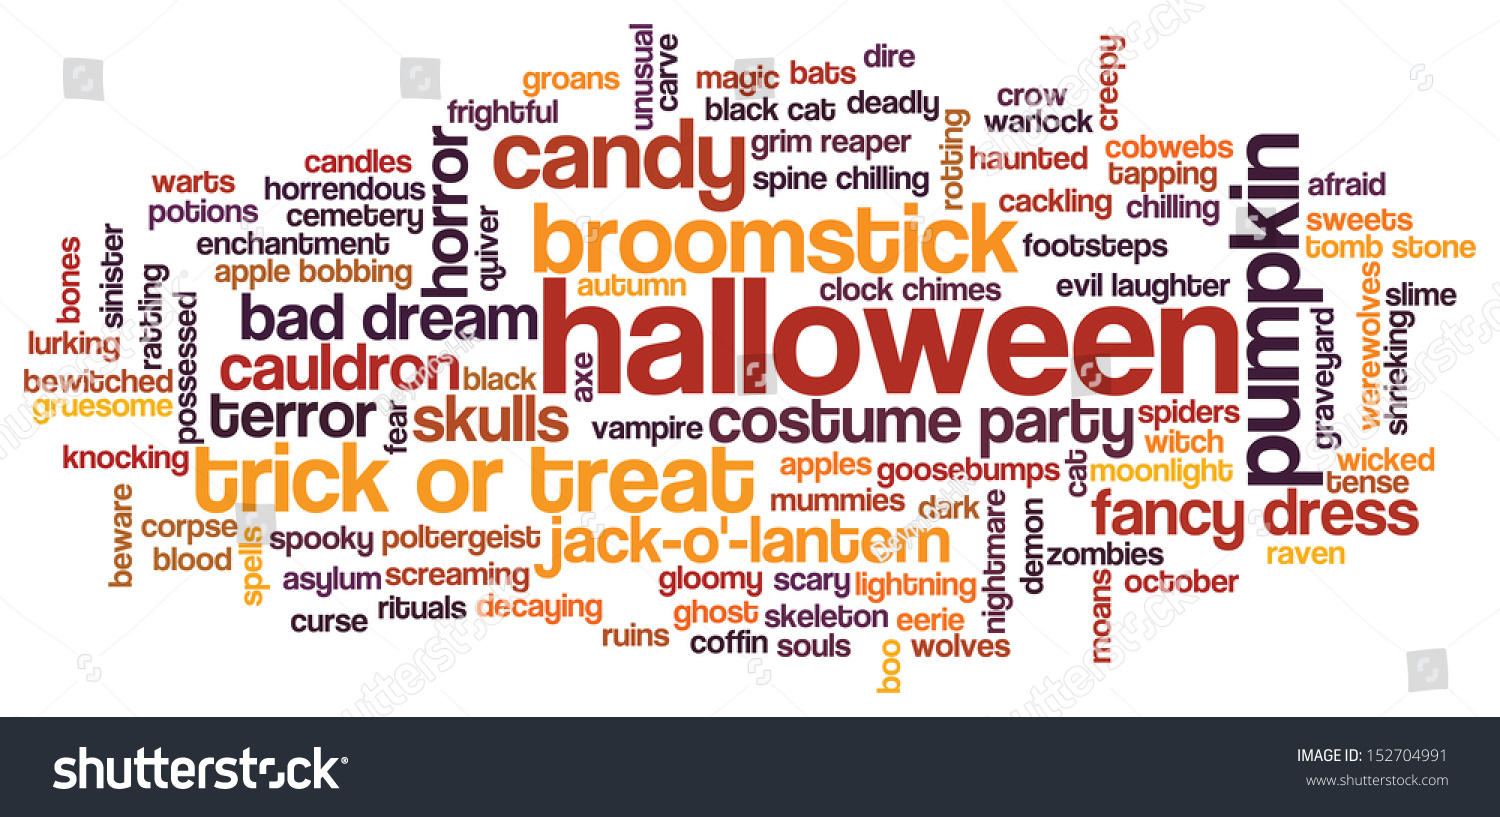 halloween word cloud illustration on white background with words related to halloween witch trick